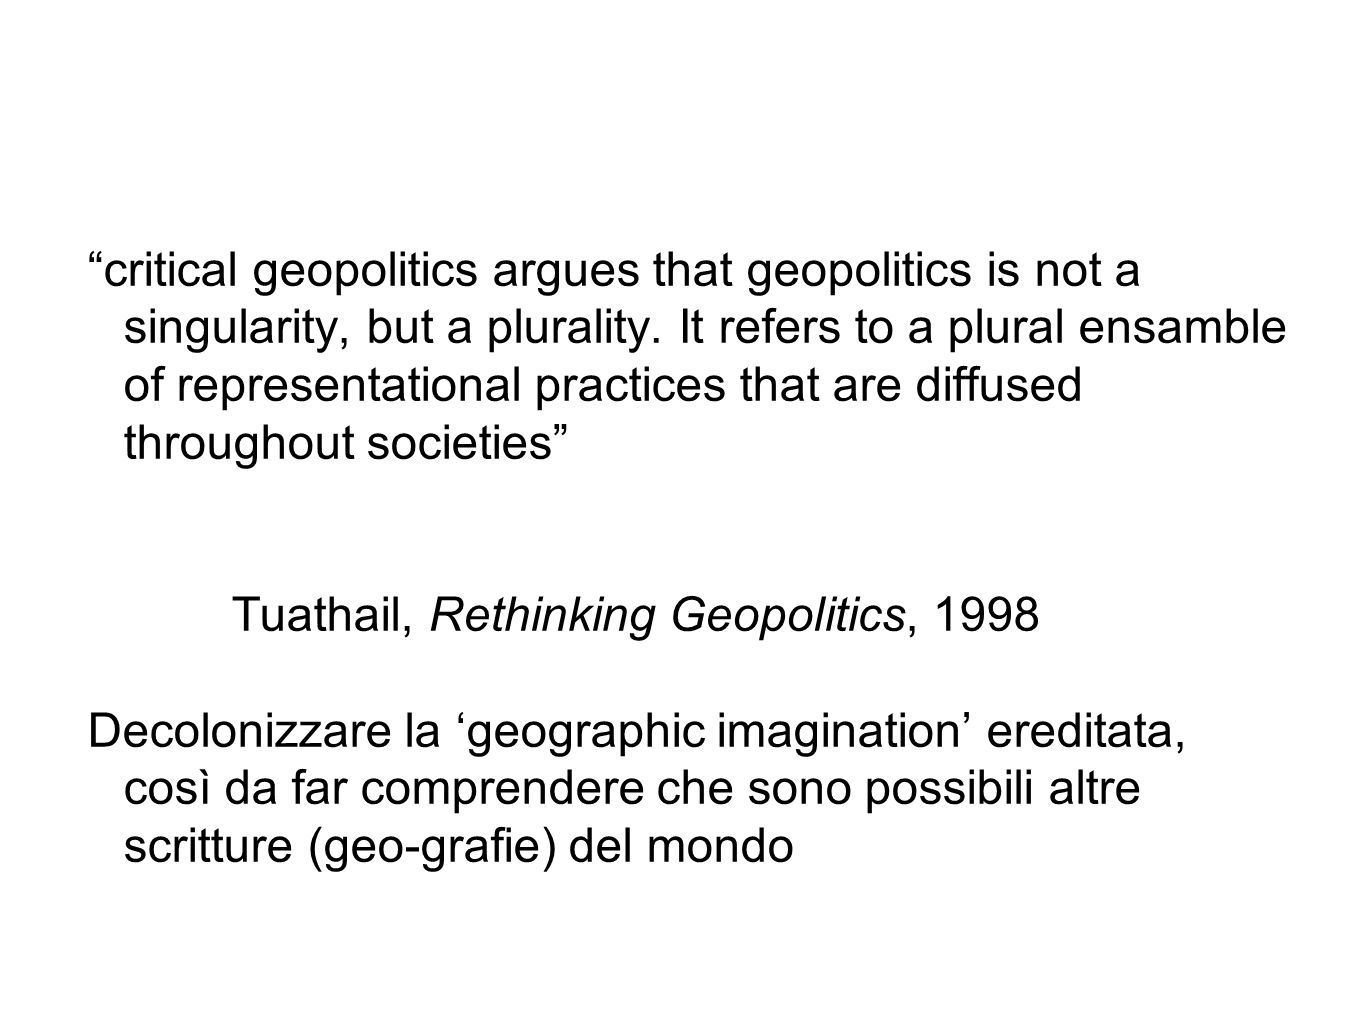 """critical geopolitics argues that geopolitics is not a singularity, but a plurality. It refers to a plural ensamble of representational practices that"